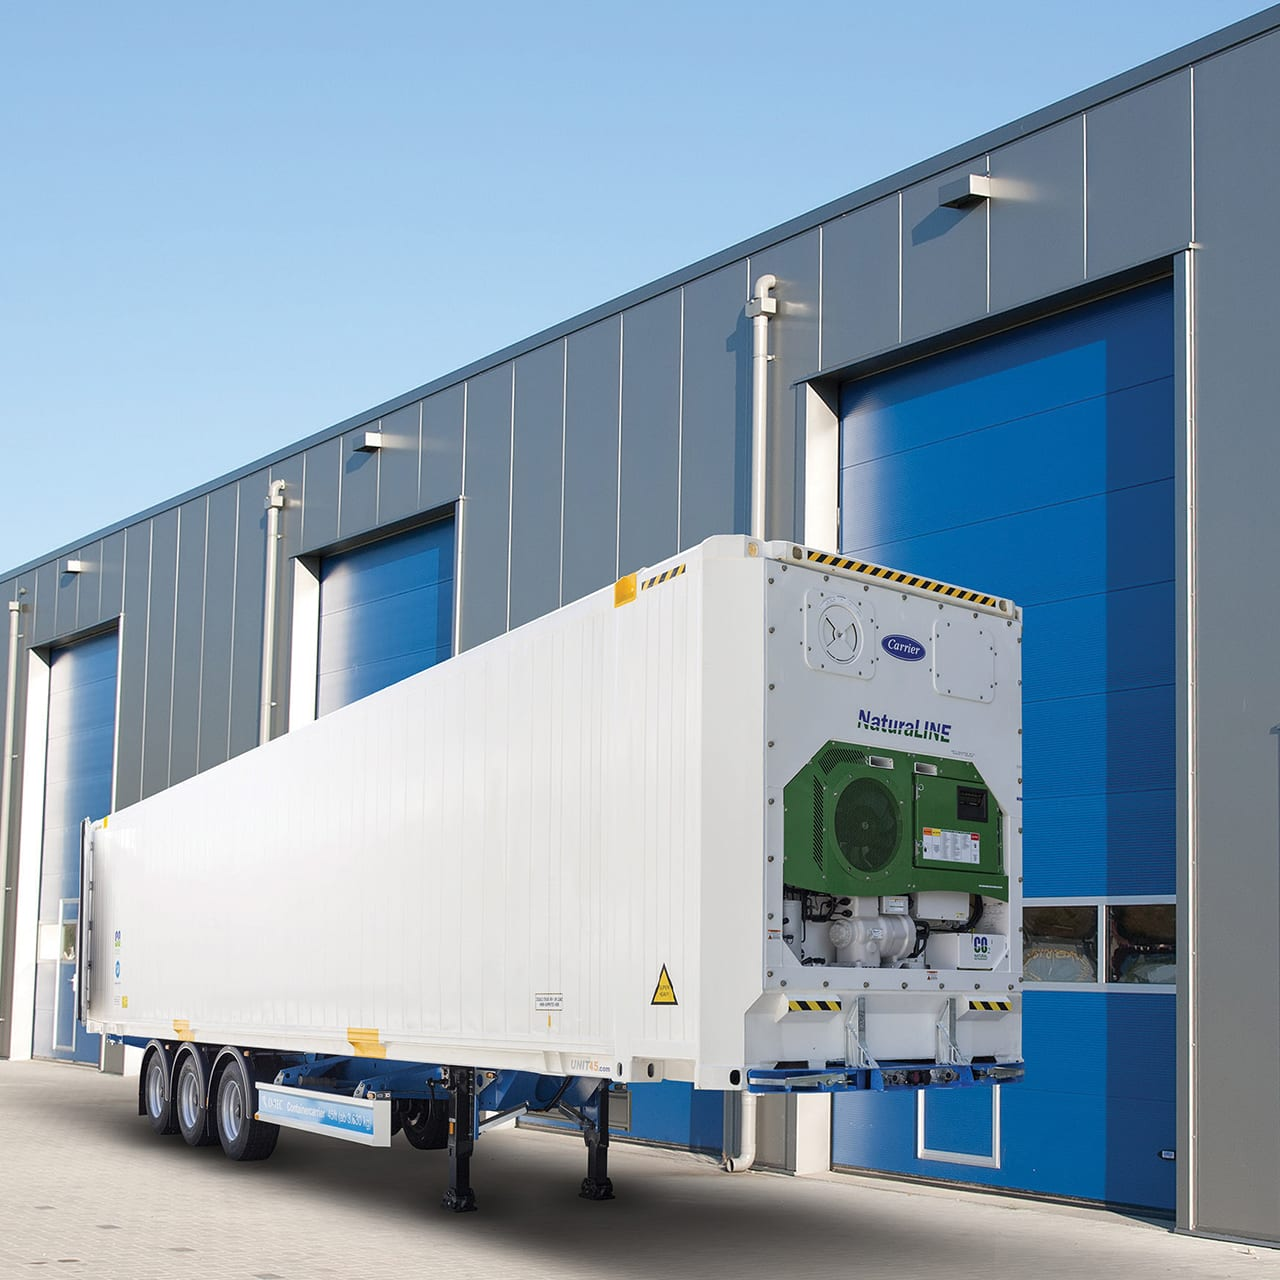 Carrier Pods temporary storage unit monitored by Sensitech